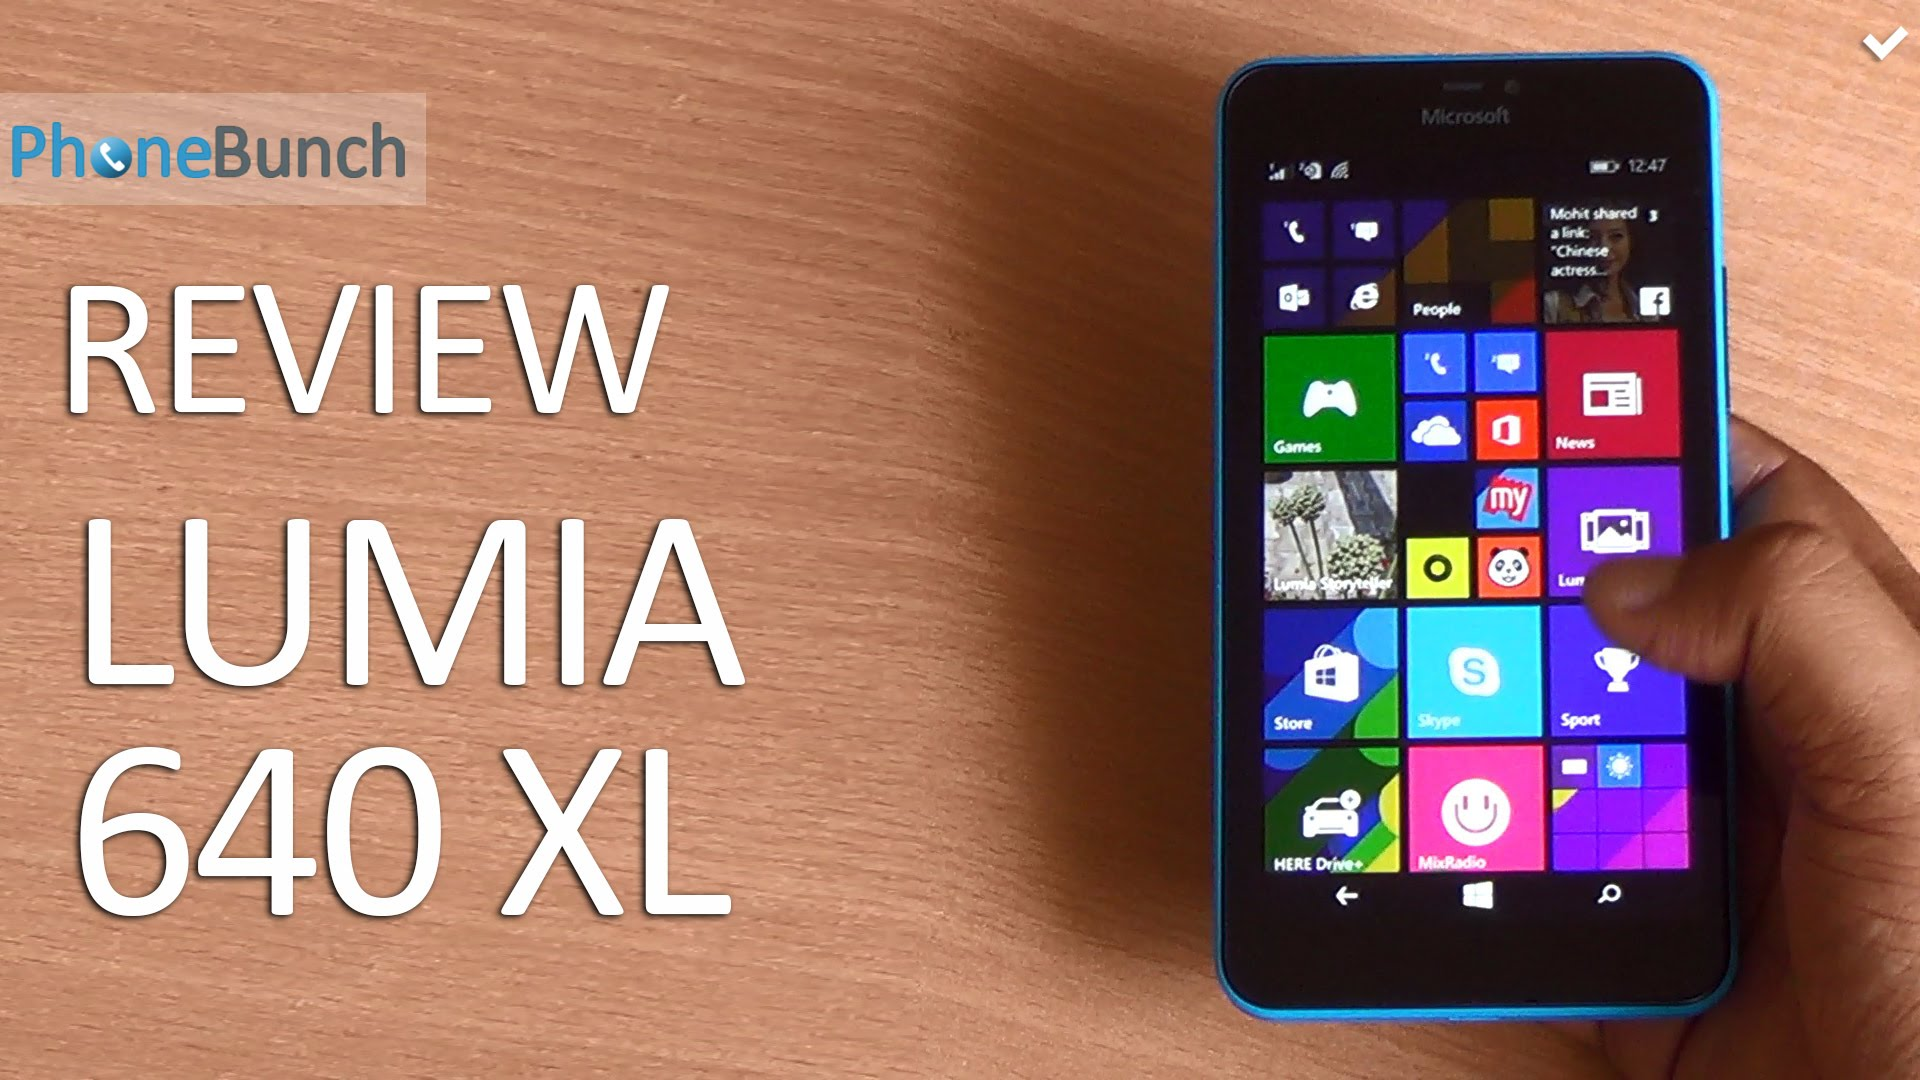 microsoft lumia 640 xl dual sim review. Black Bedroom Furniture Sets. Home Design Ideas